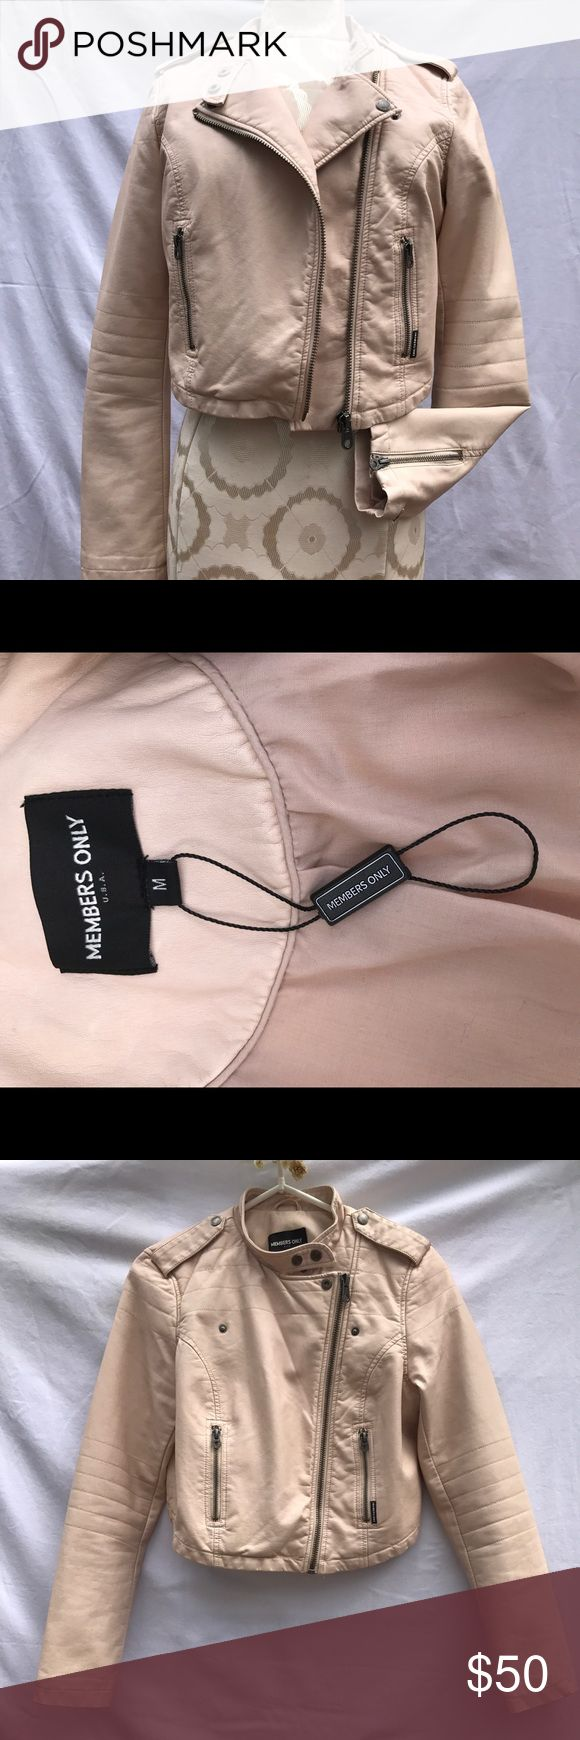 Members Only Urban Outfitters faux leather jacket Light pink Members Only from Urban Outfitters vegan leather jacket size M Members Only by Urban Outfitters Jackets & Coats